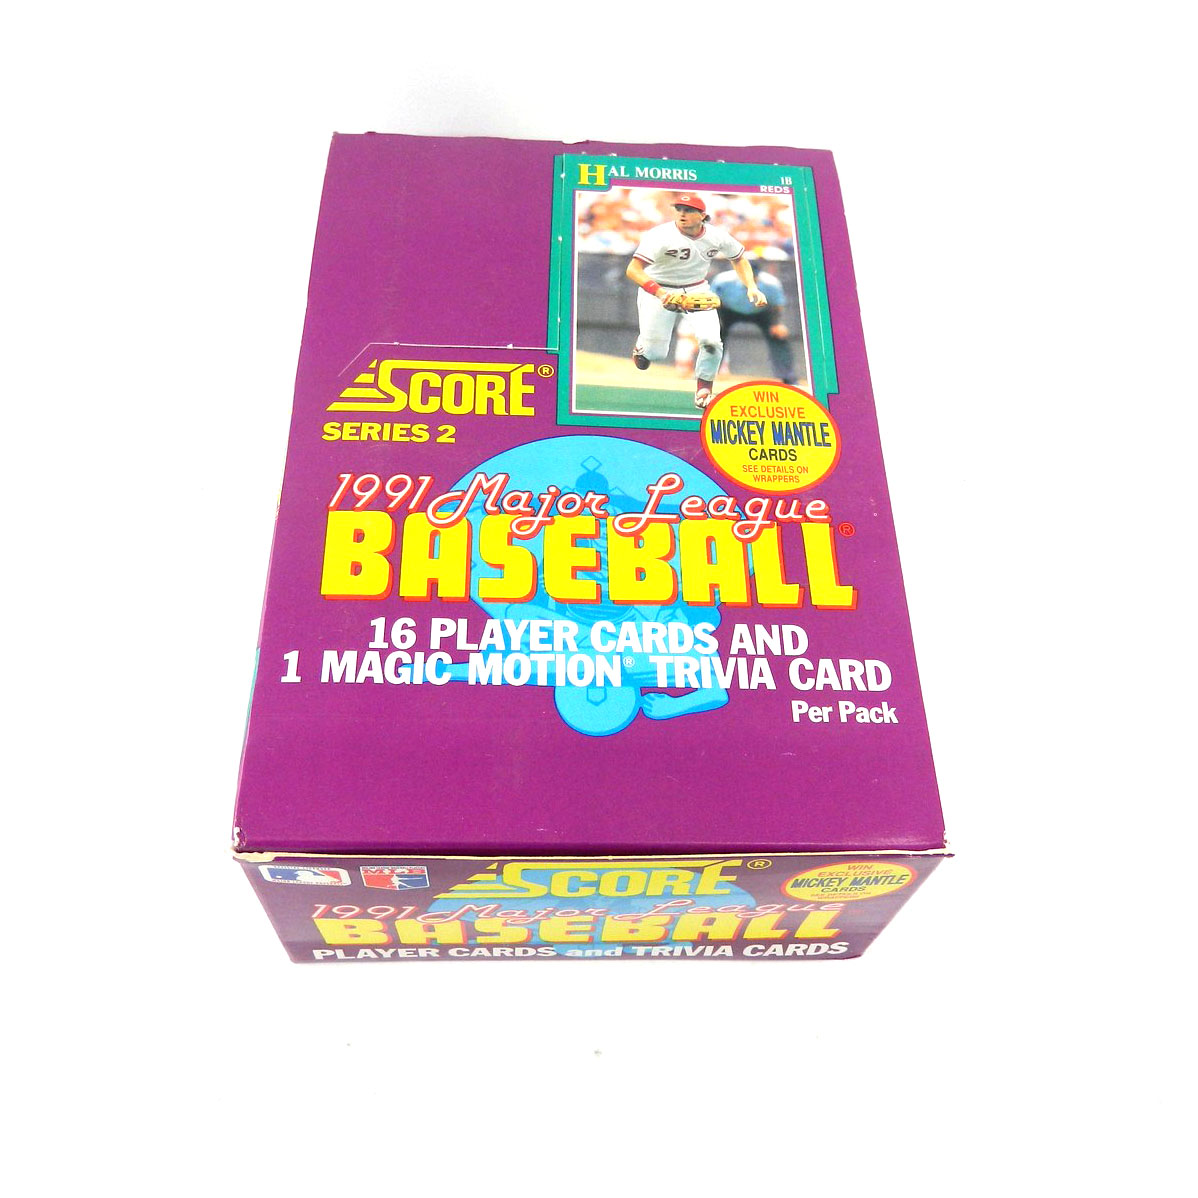 Details About 1991 Score Baseball Series 2 Trading Card Box 36 Pack